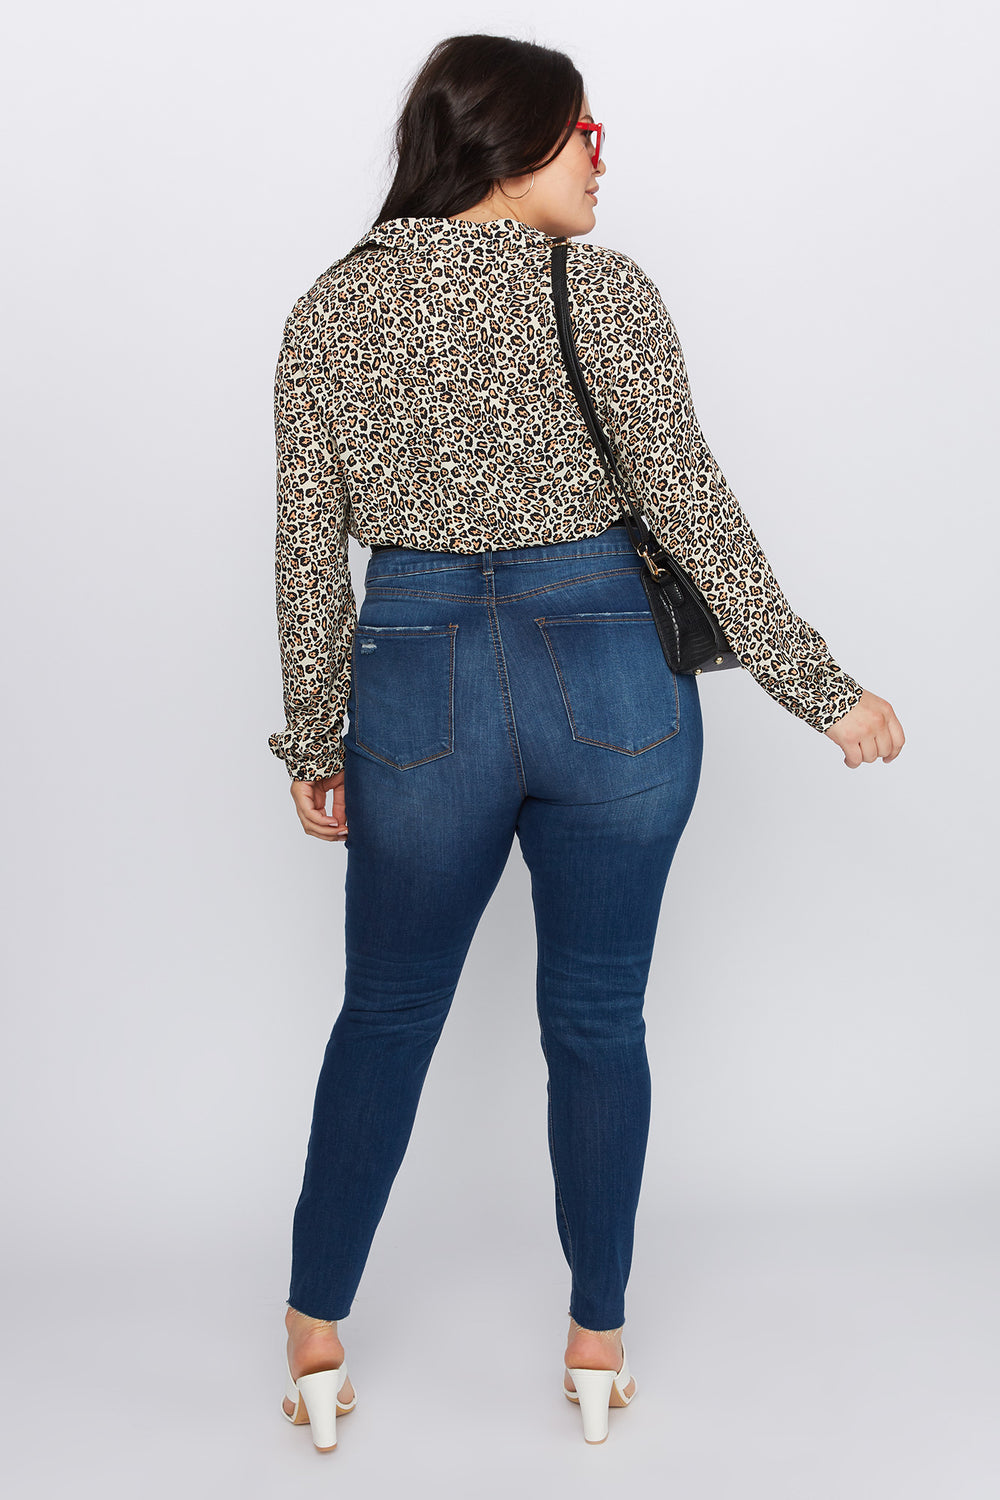 Refuge Plus Size High-Rise Dark Wash Distressed Jeggings Dark Blue